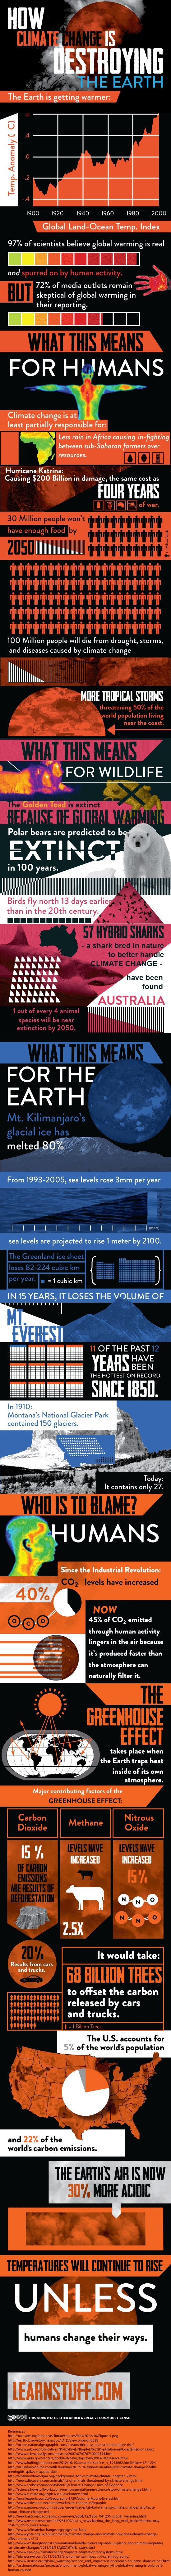 Wow!  What An Incredible Climate Change Infographic